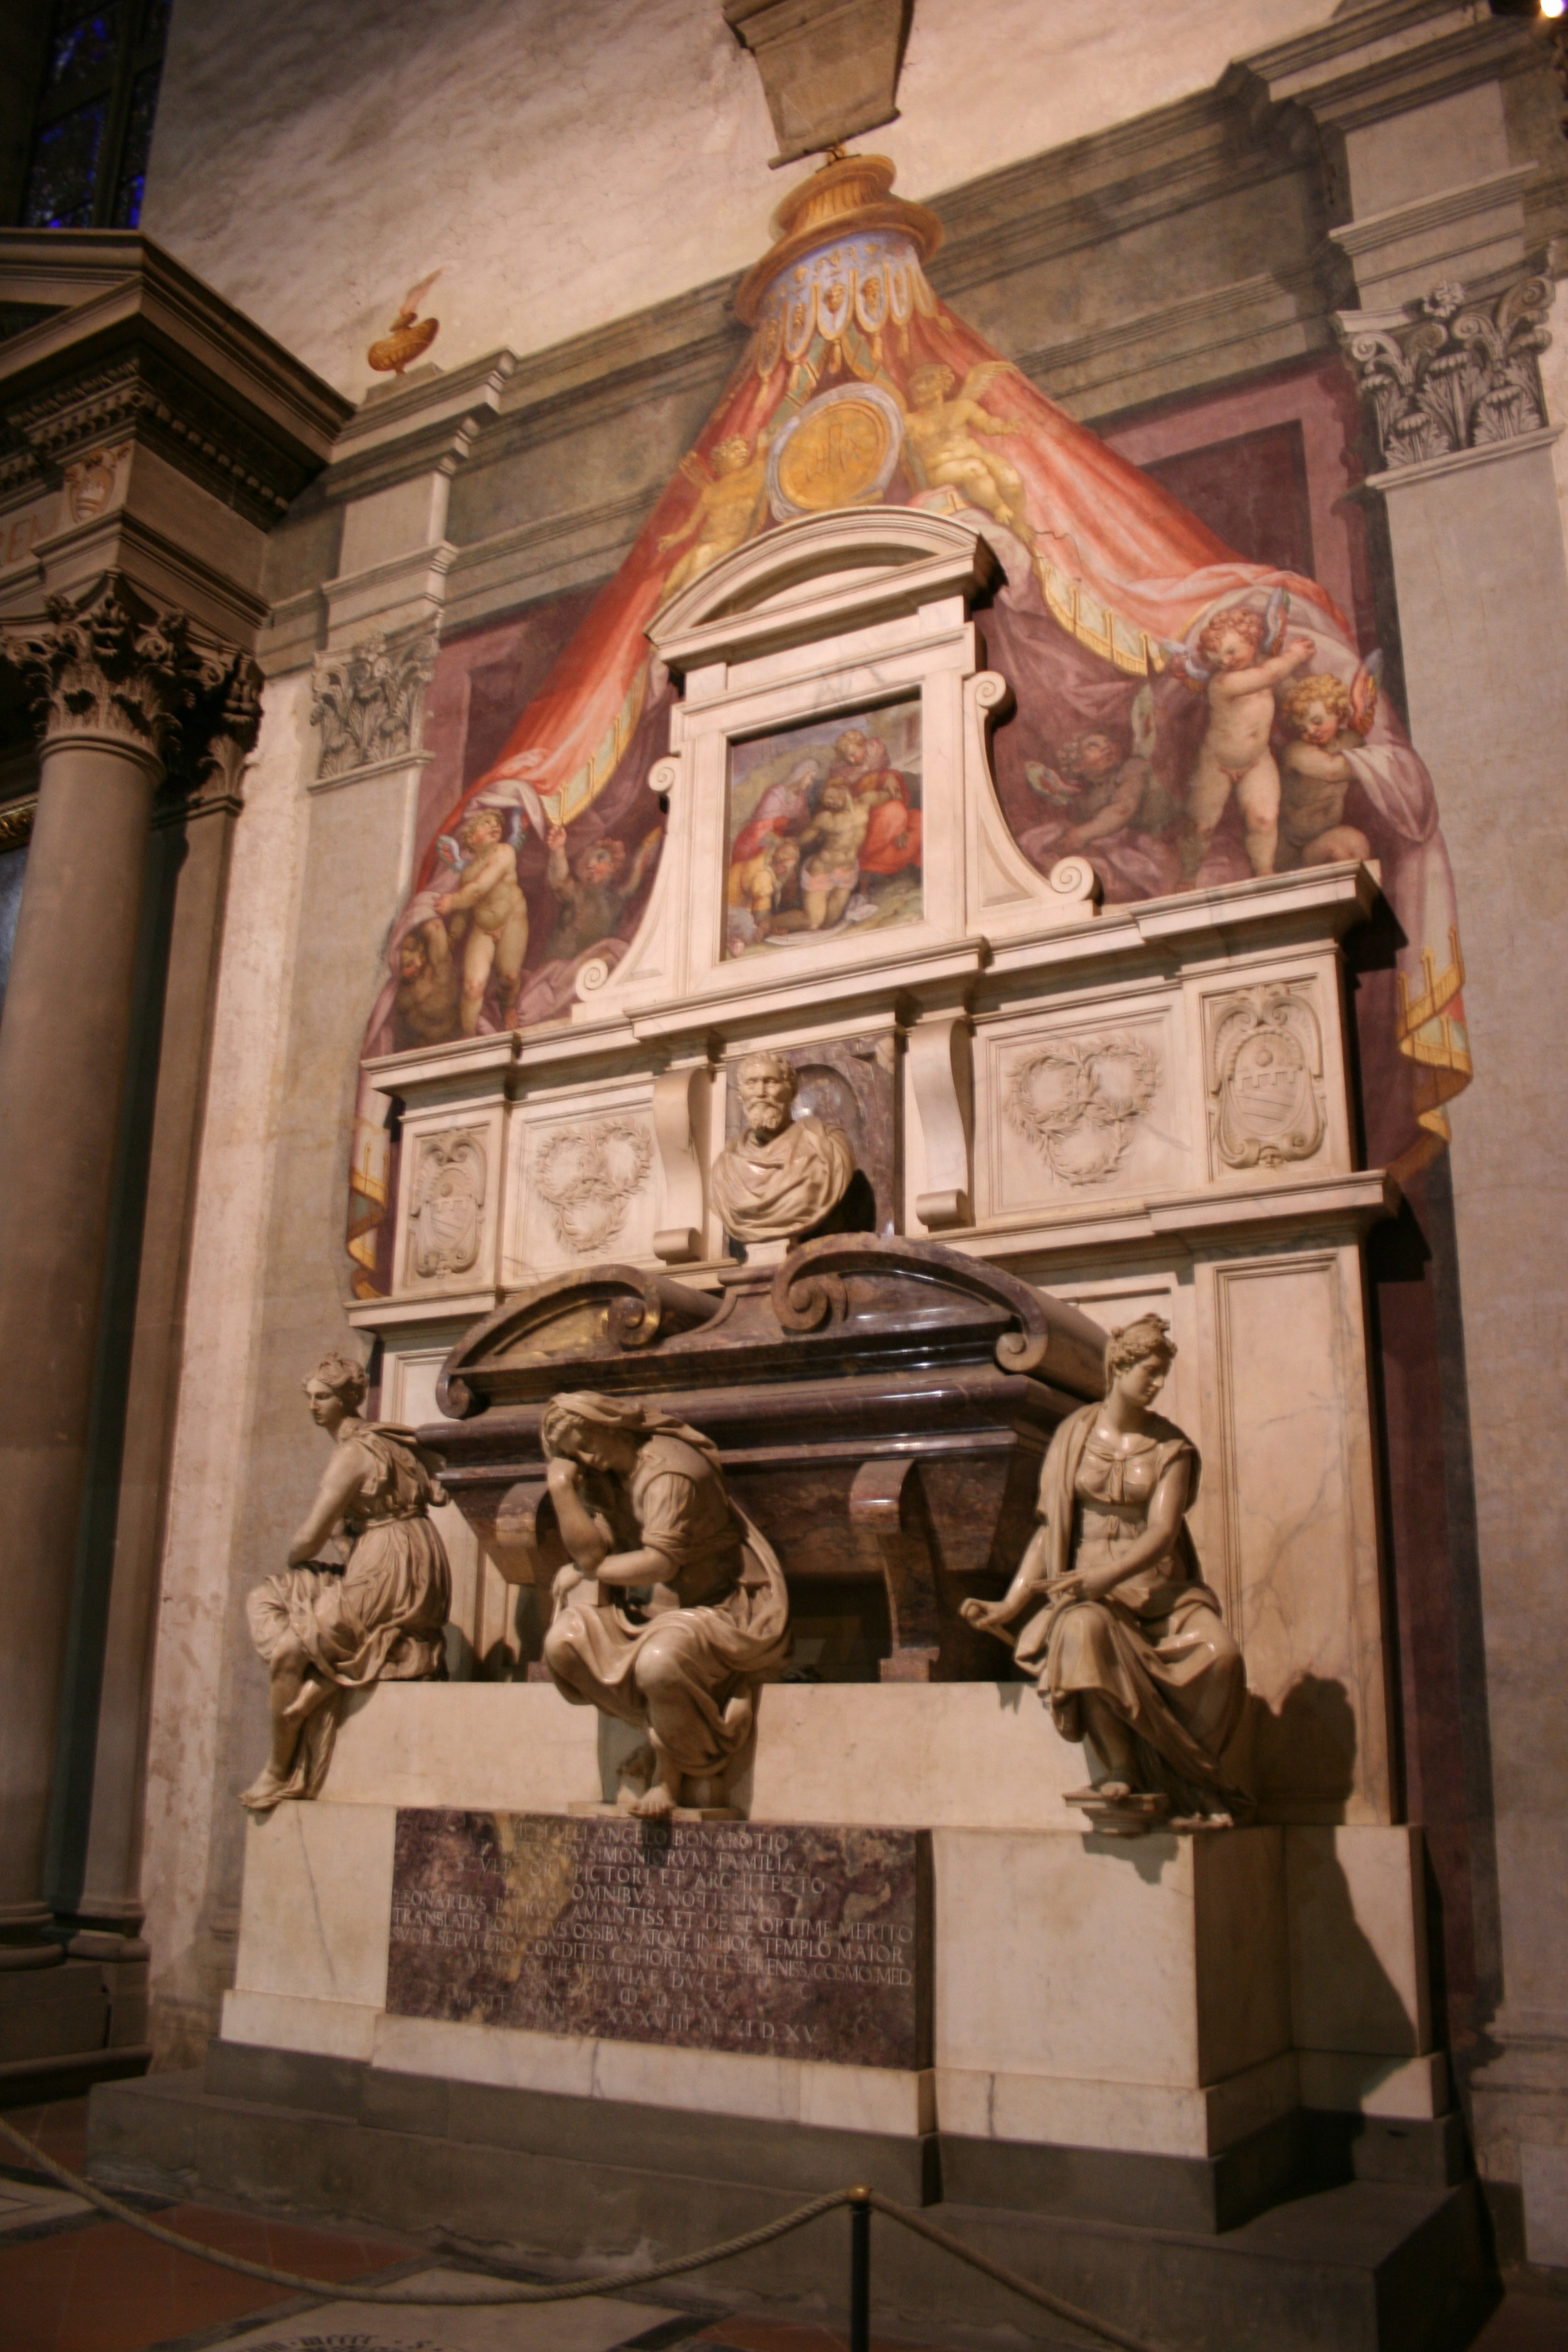 Michelangelo's tomb at Santa Croce in Florence, his home church